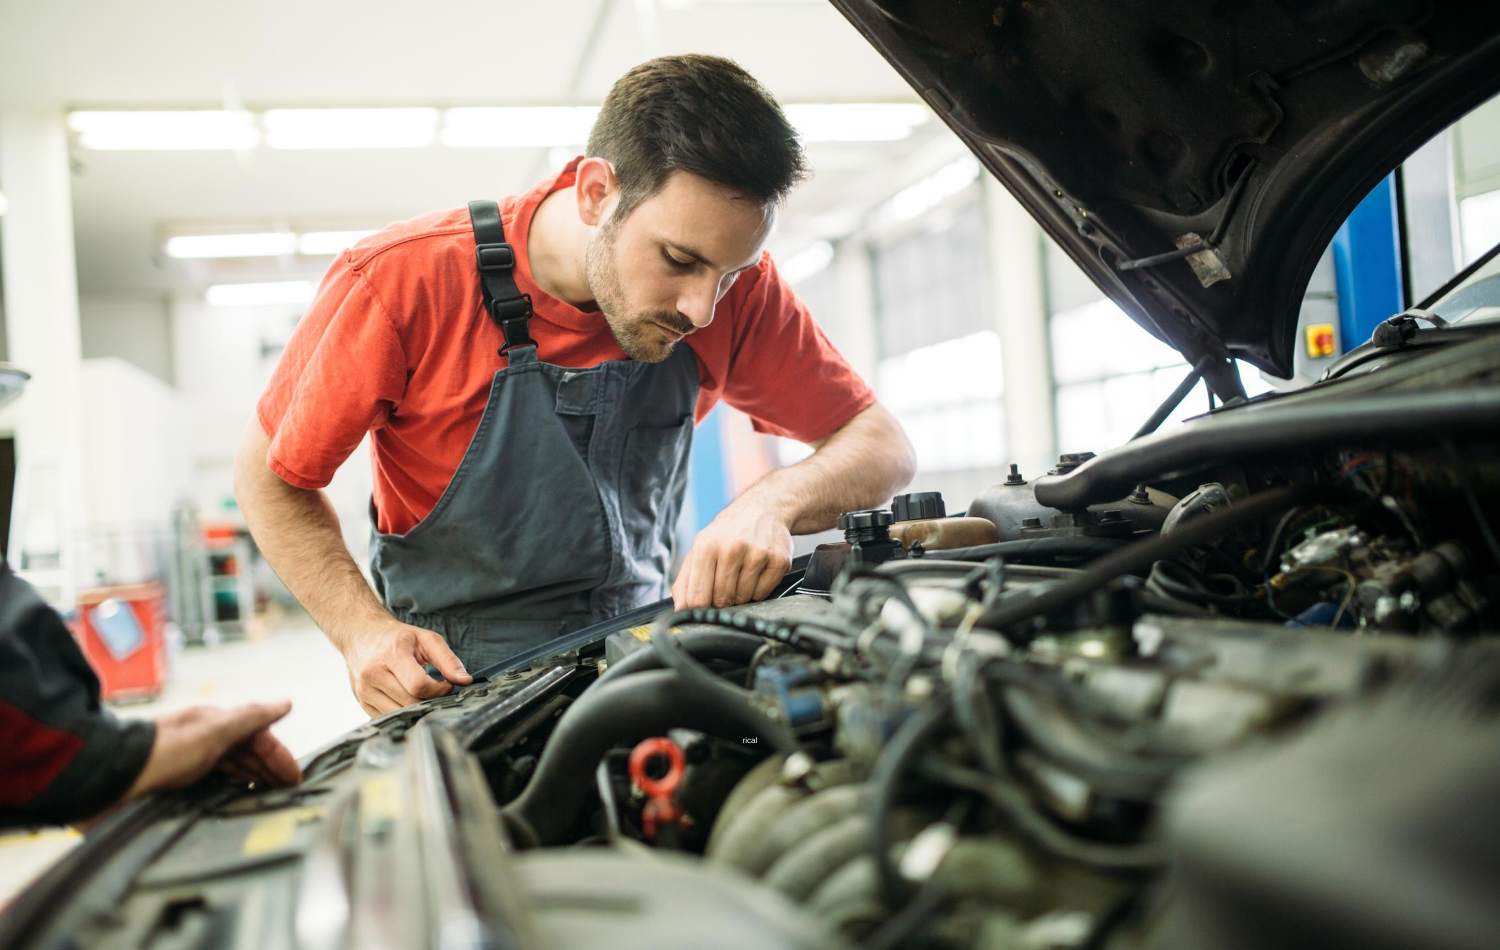 When Should I Get a Second Opinion on Auto Repairs